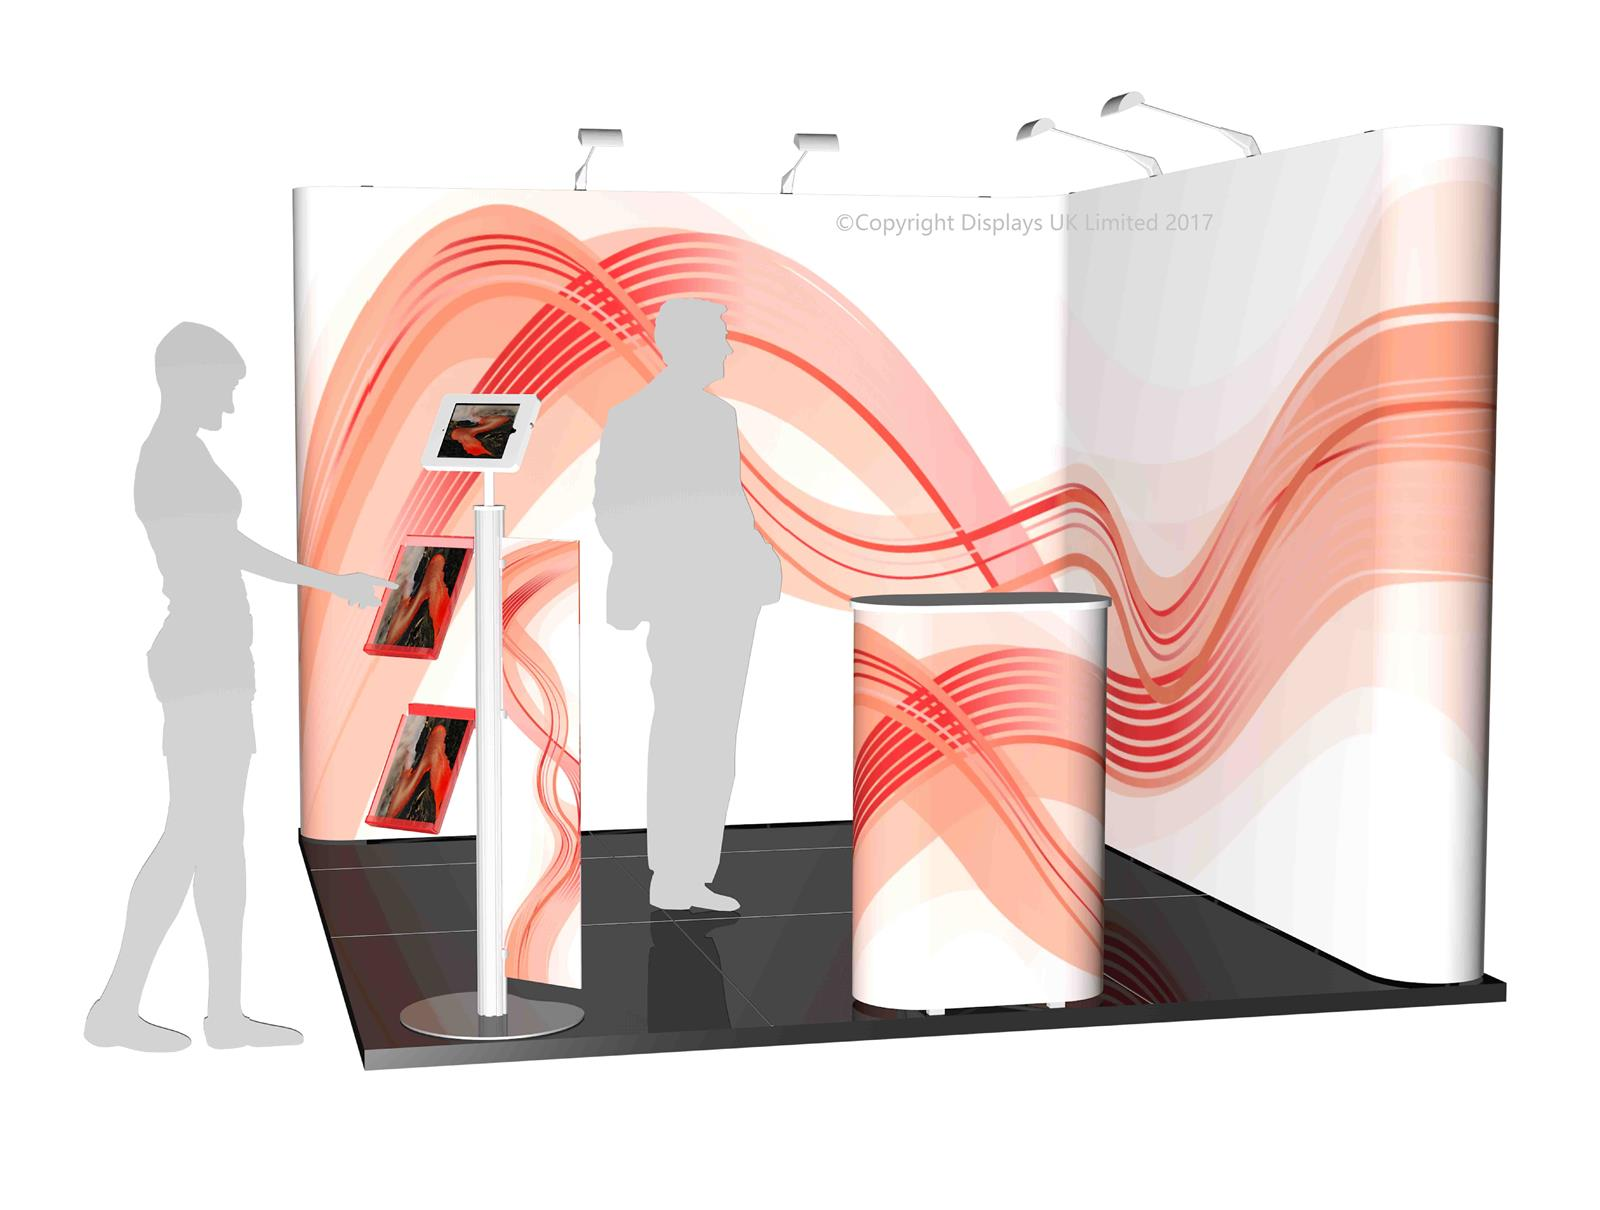 3m x 3m Linked Pop Up Exhibition Stand - Kit 14 -  P3x3-2aS